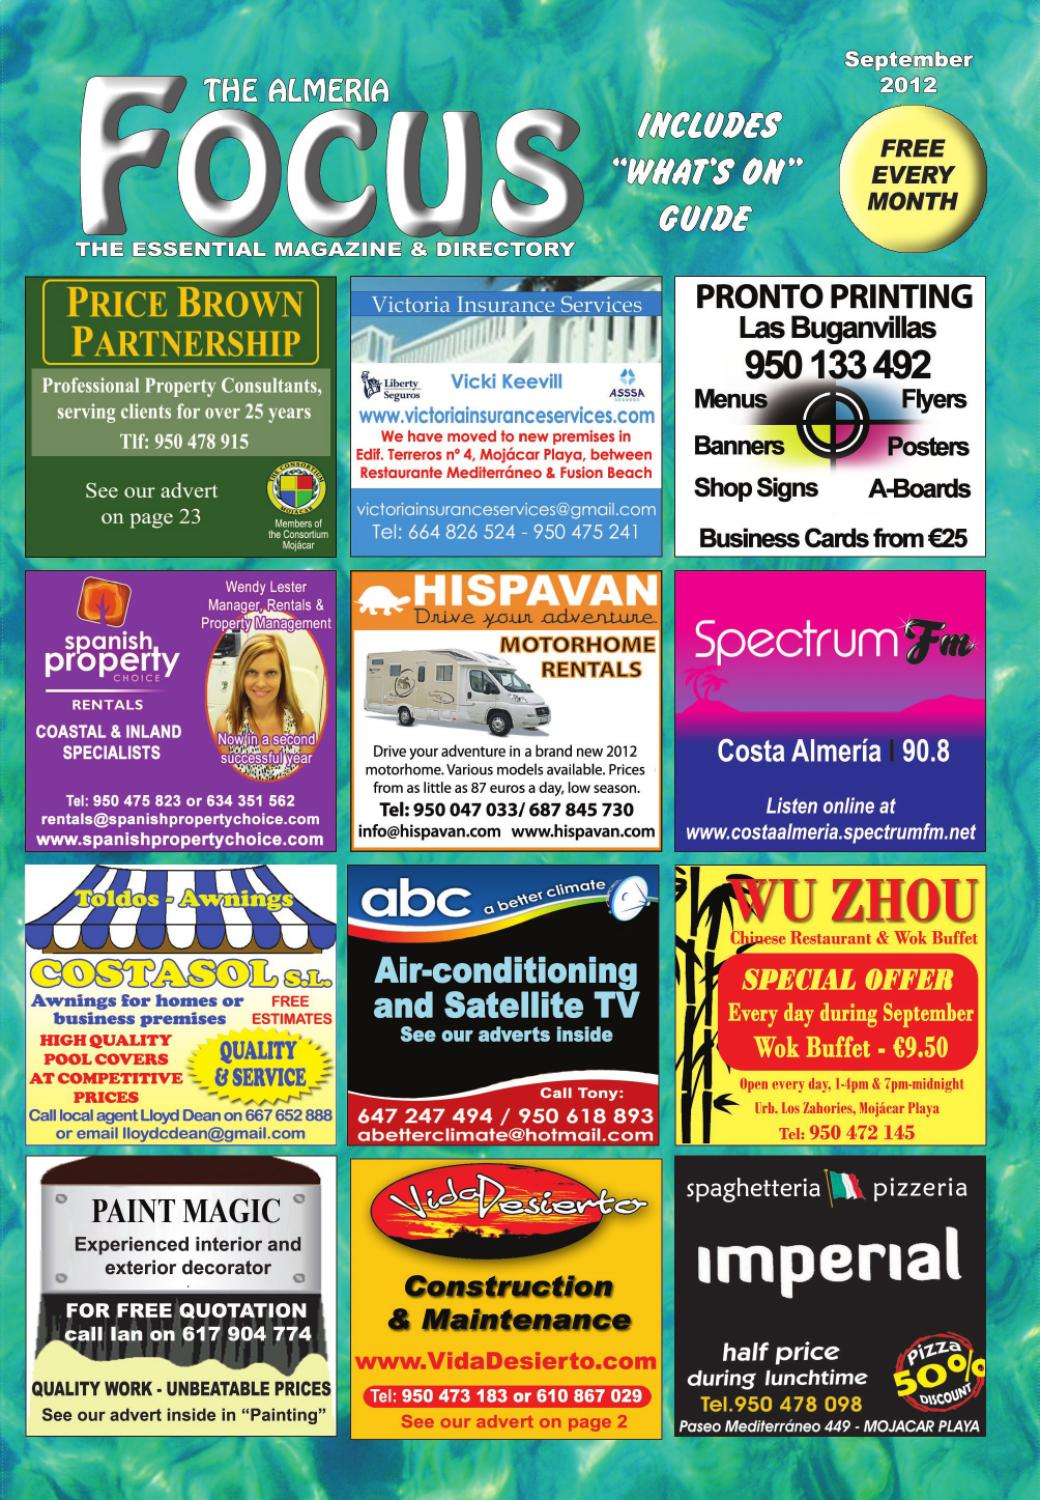 Buffet Libre Granada Kinepolis The Almeria Focus September 2012 By The Almeria Focus Issuu